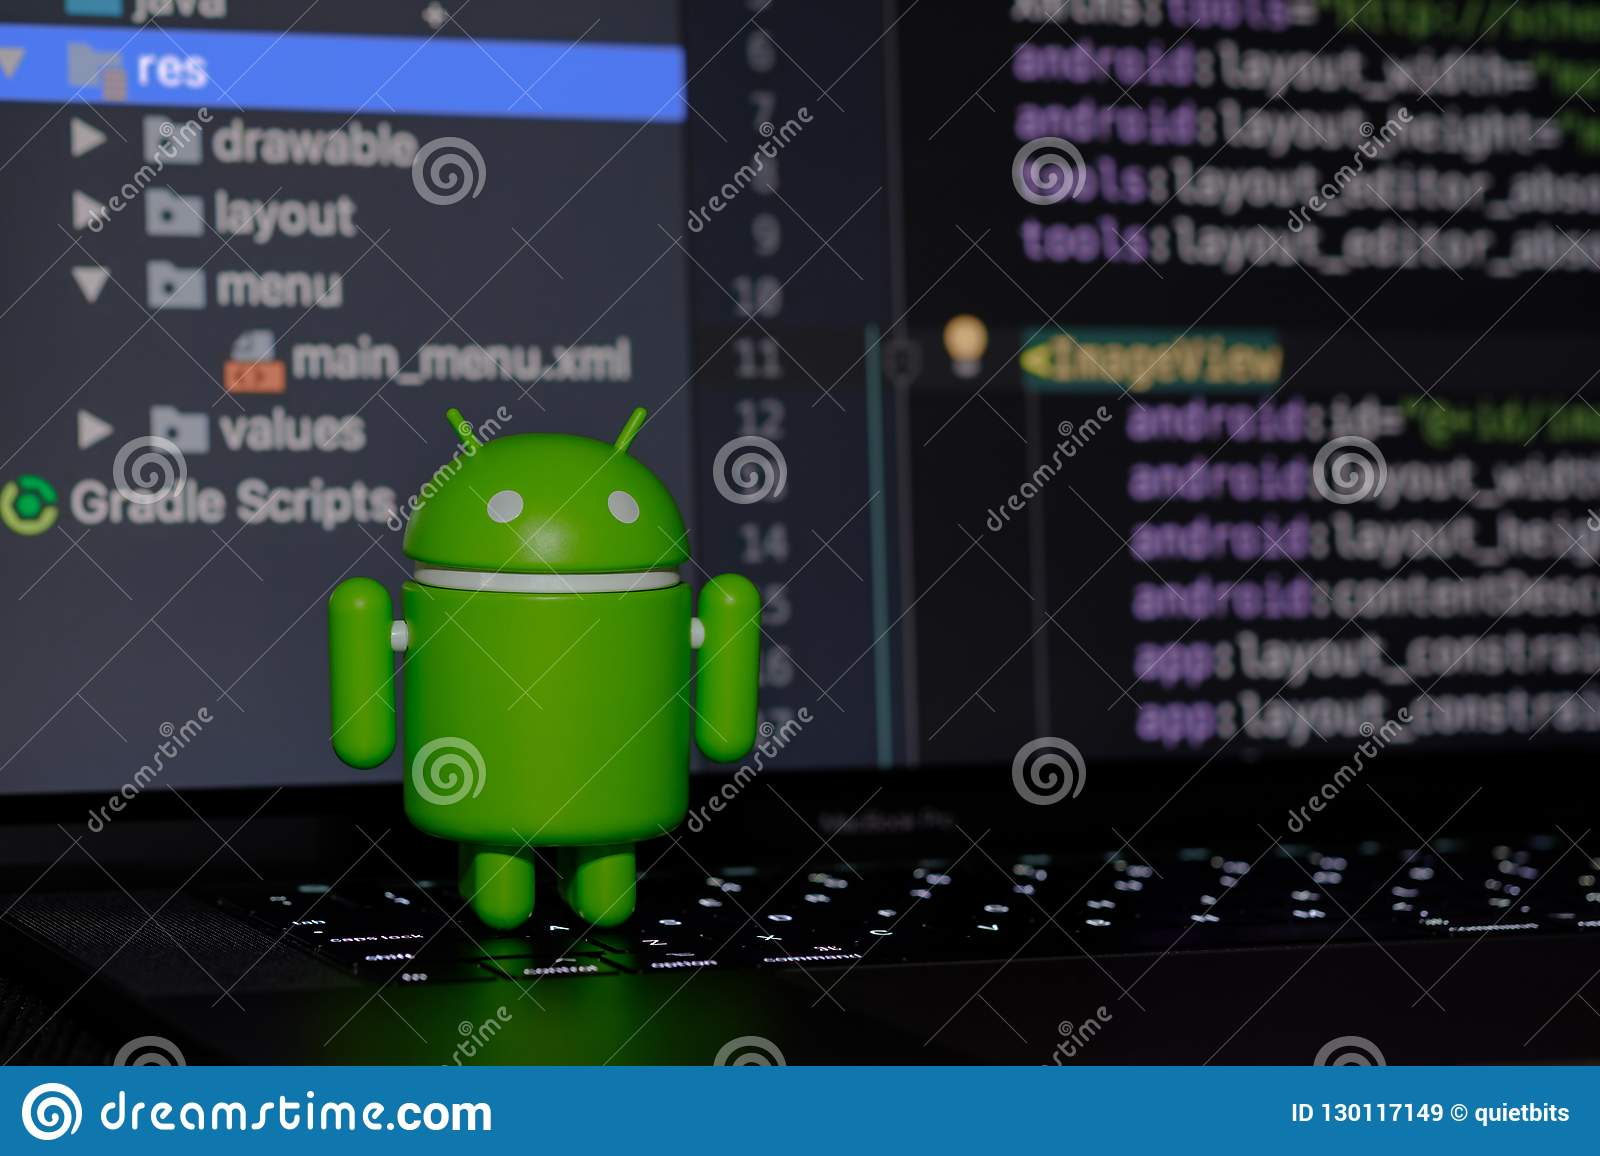 Google Android figure standing on laptop keyboard